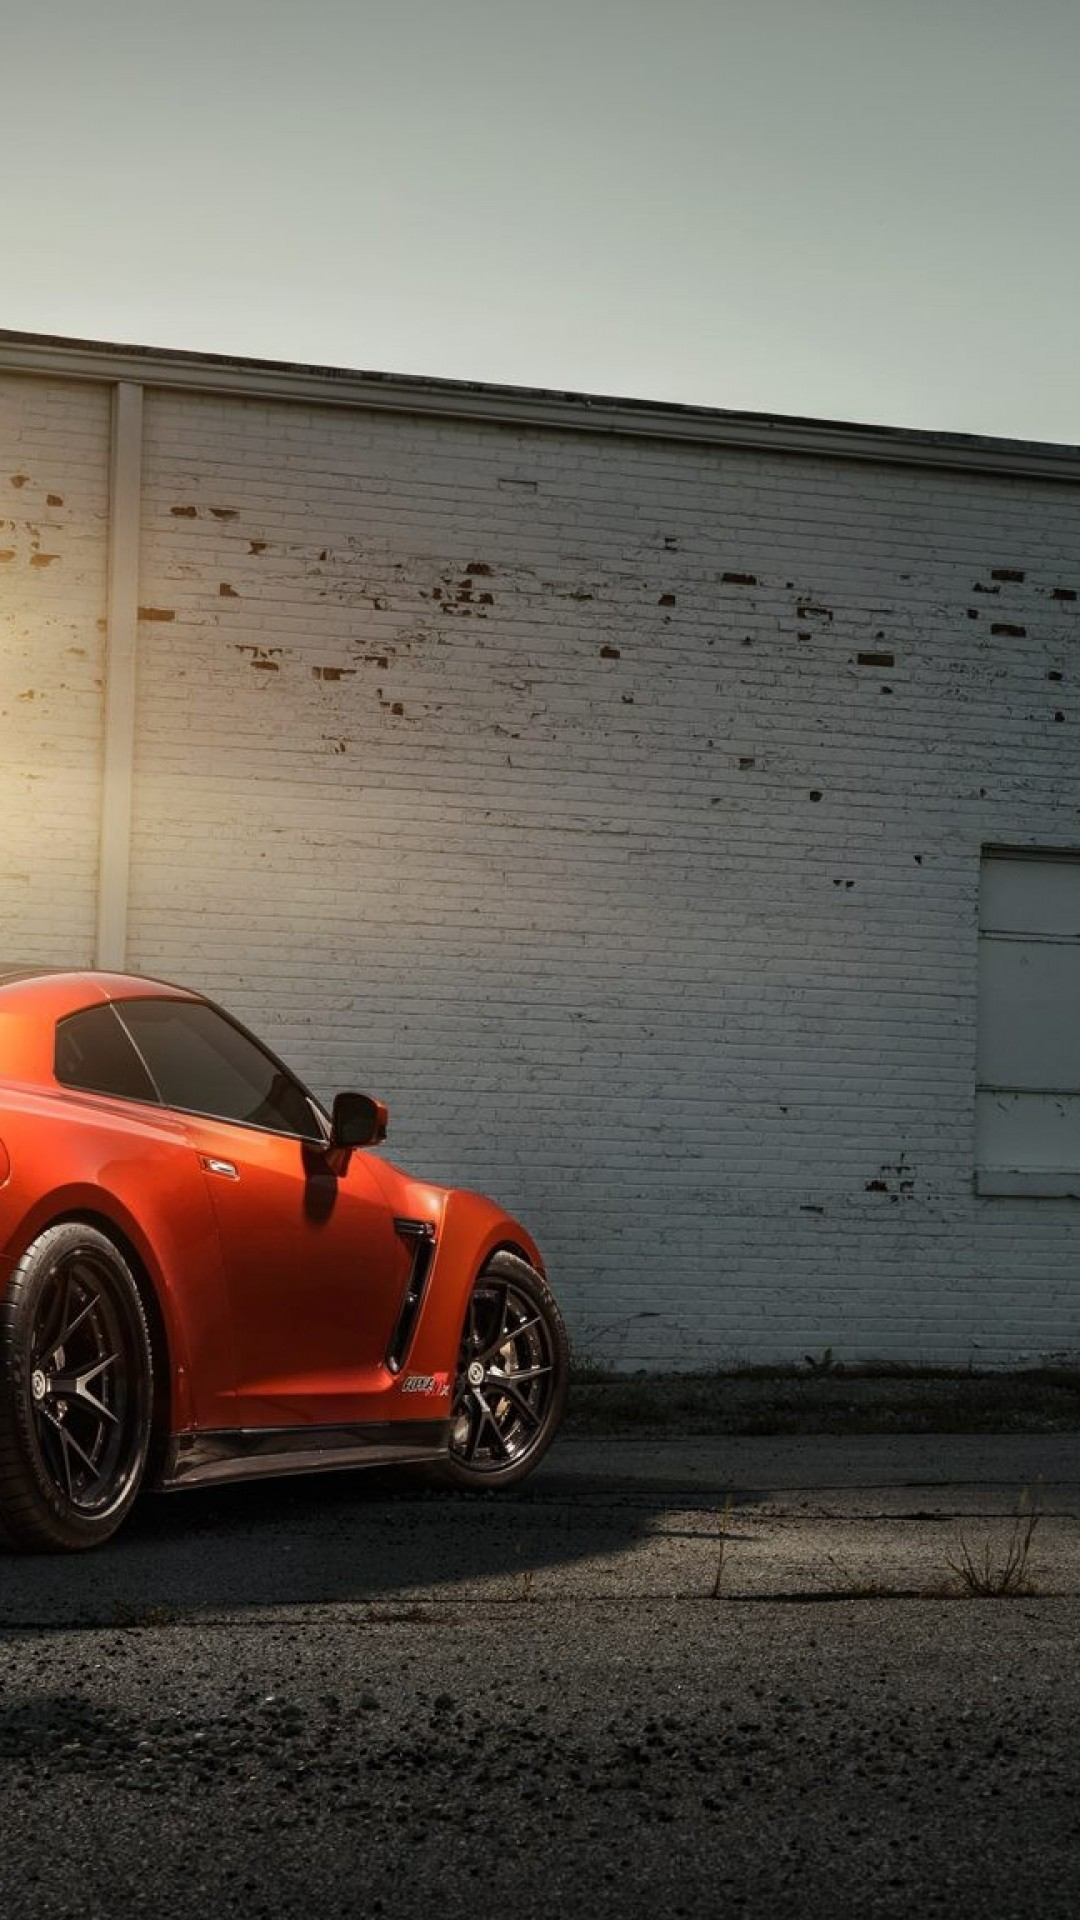 Cars, Nissan Gtr, Sunset